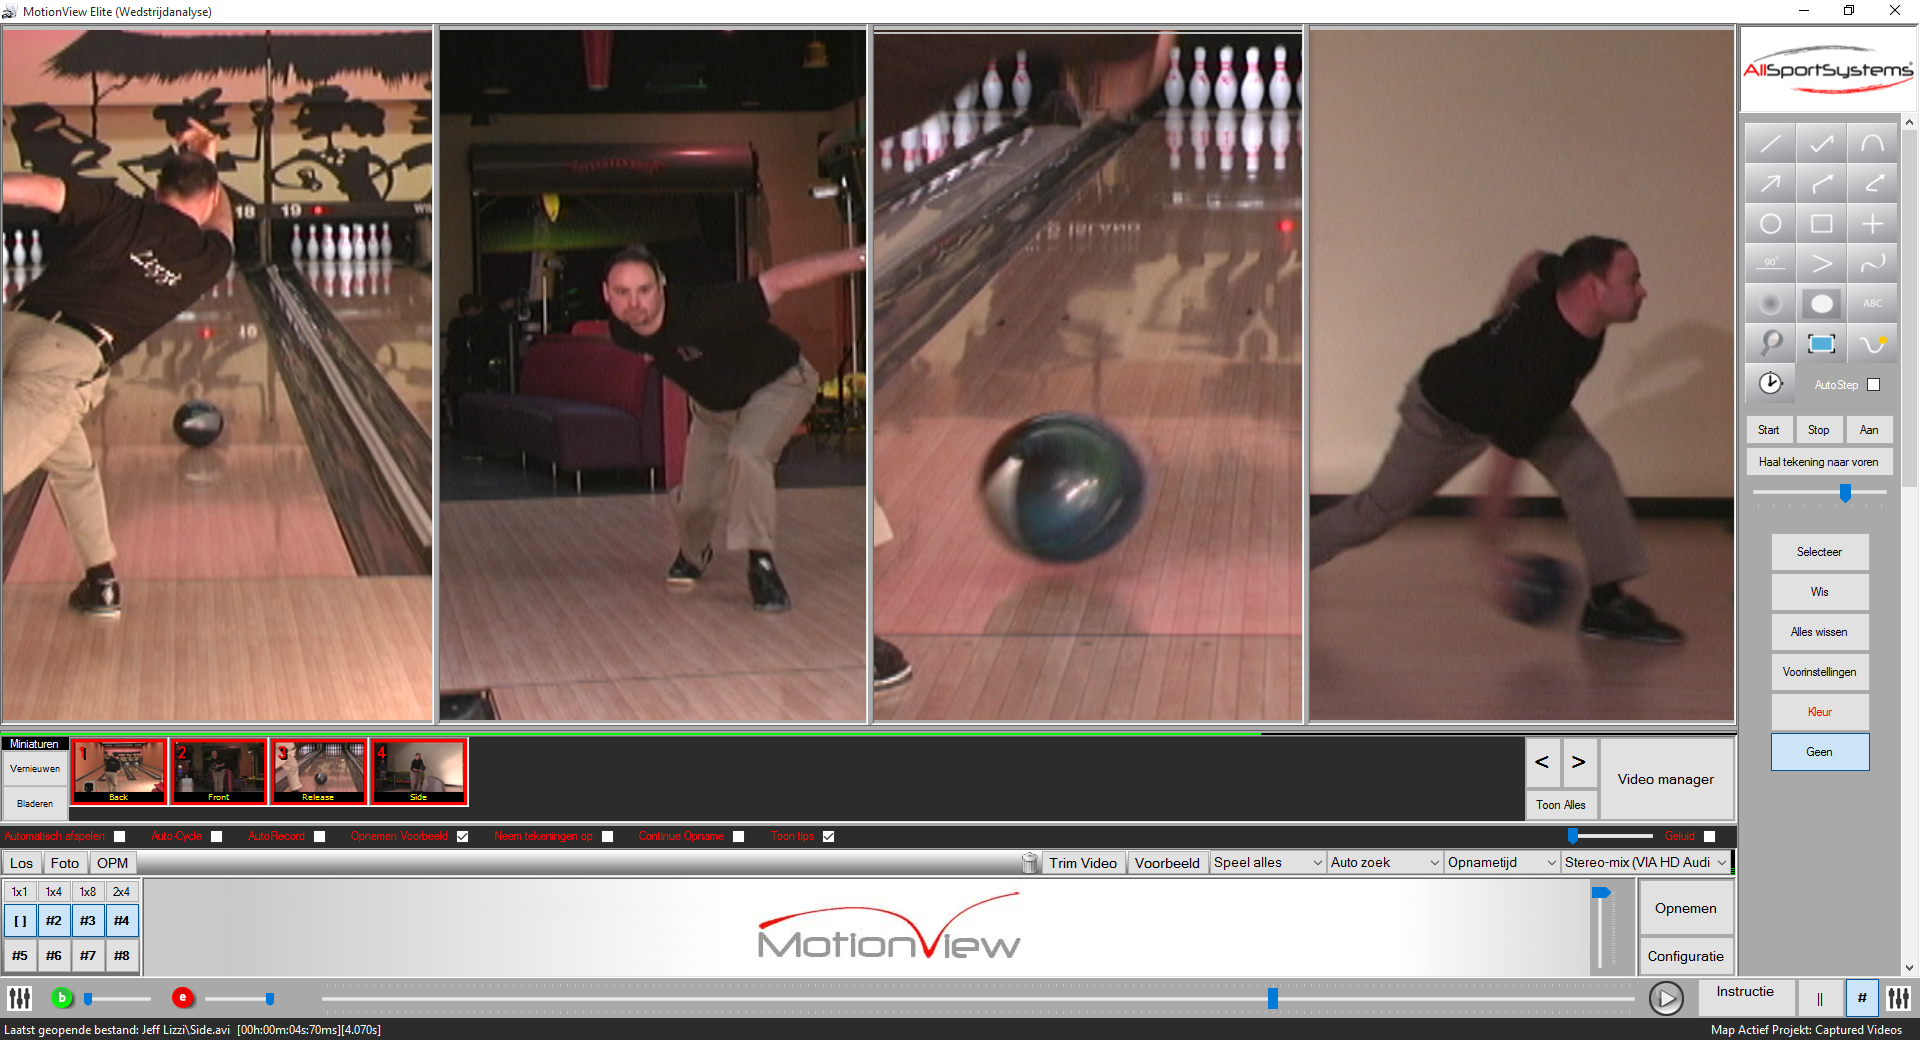 MotionView - Bowling - Video Analyse Software